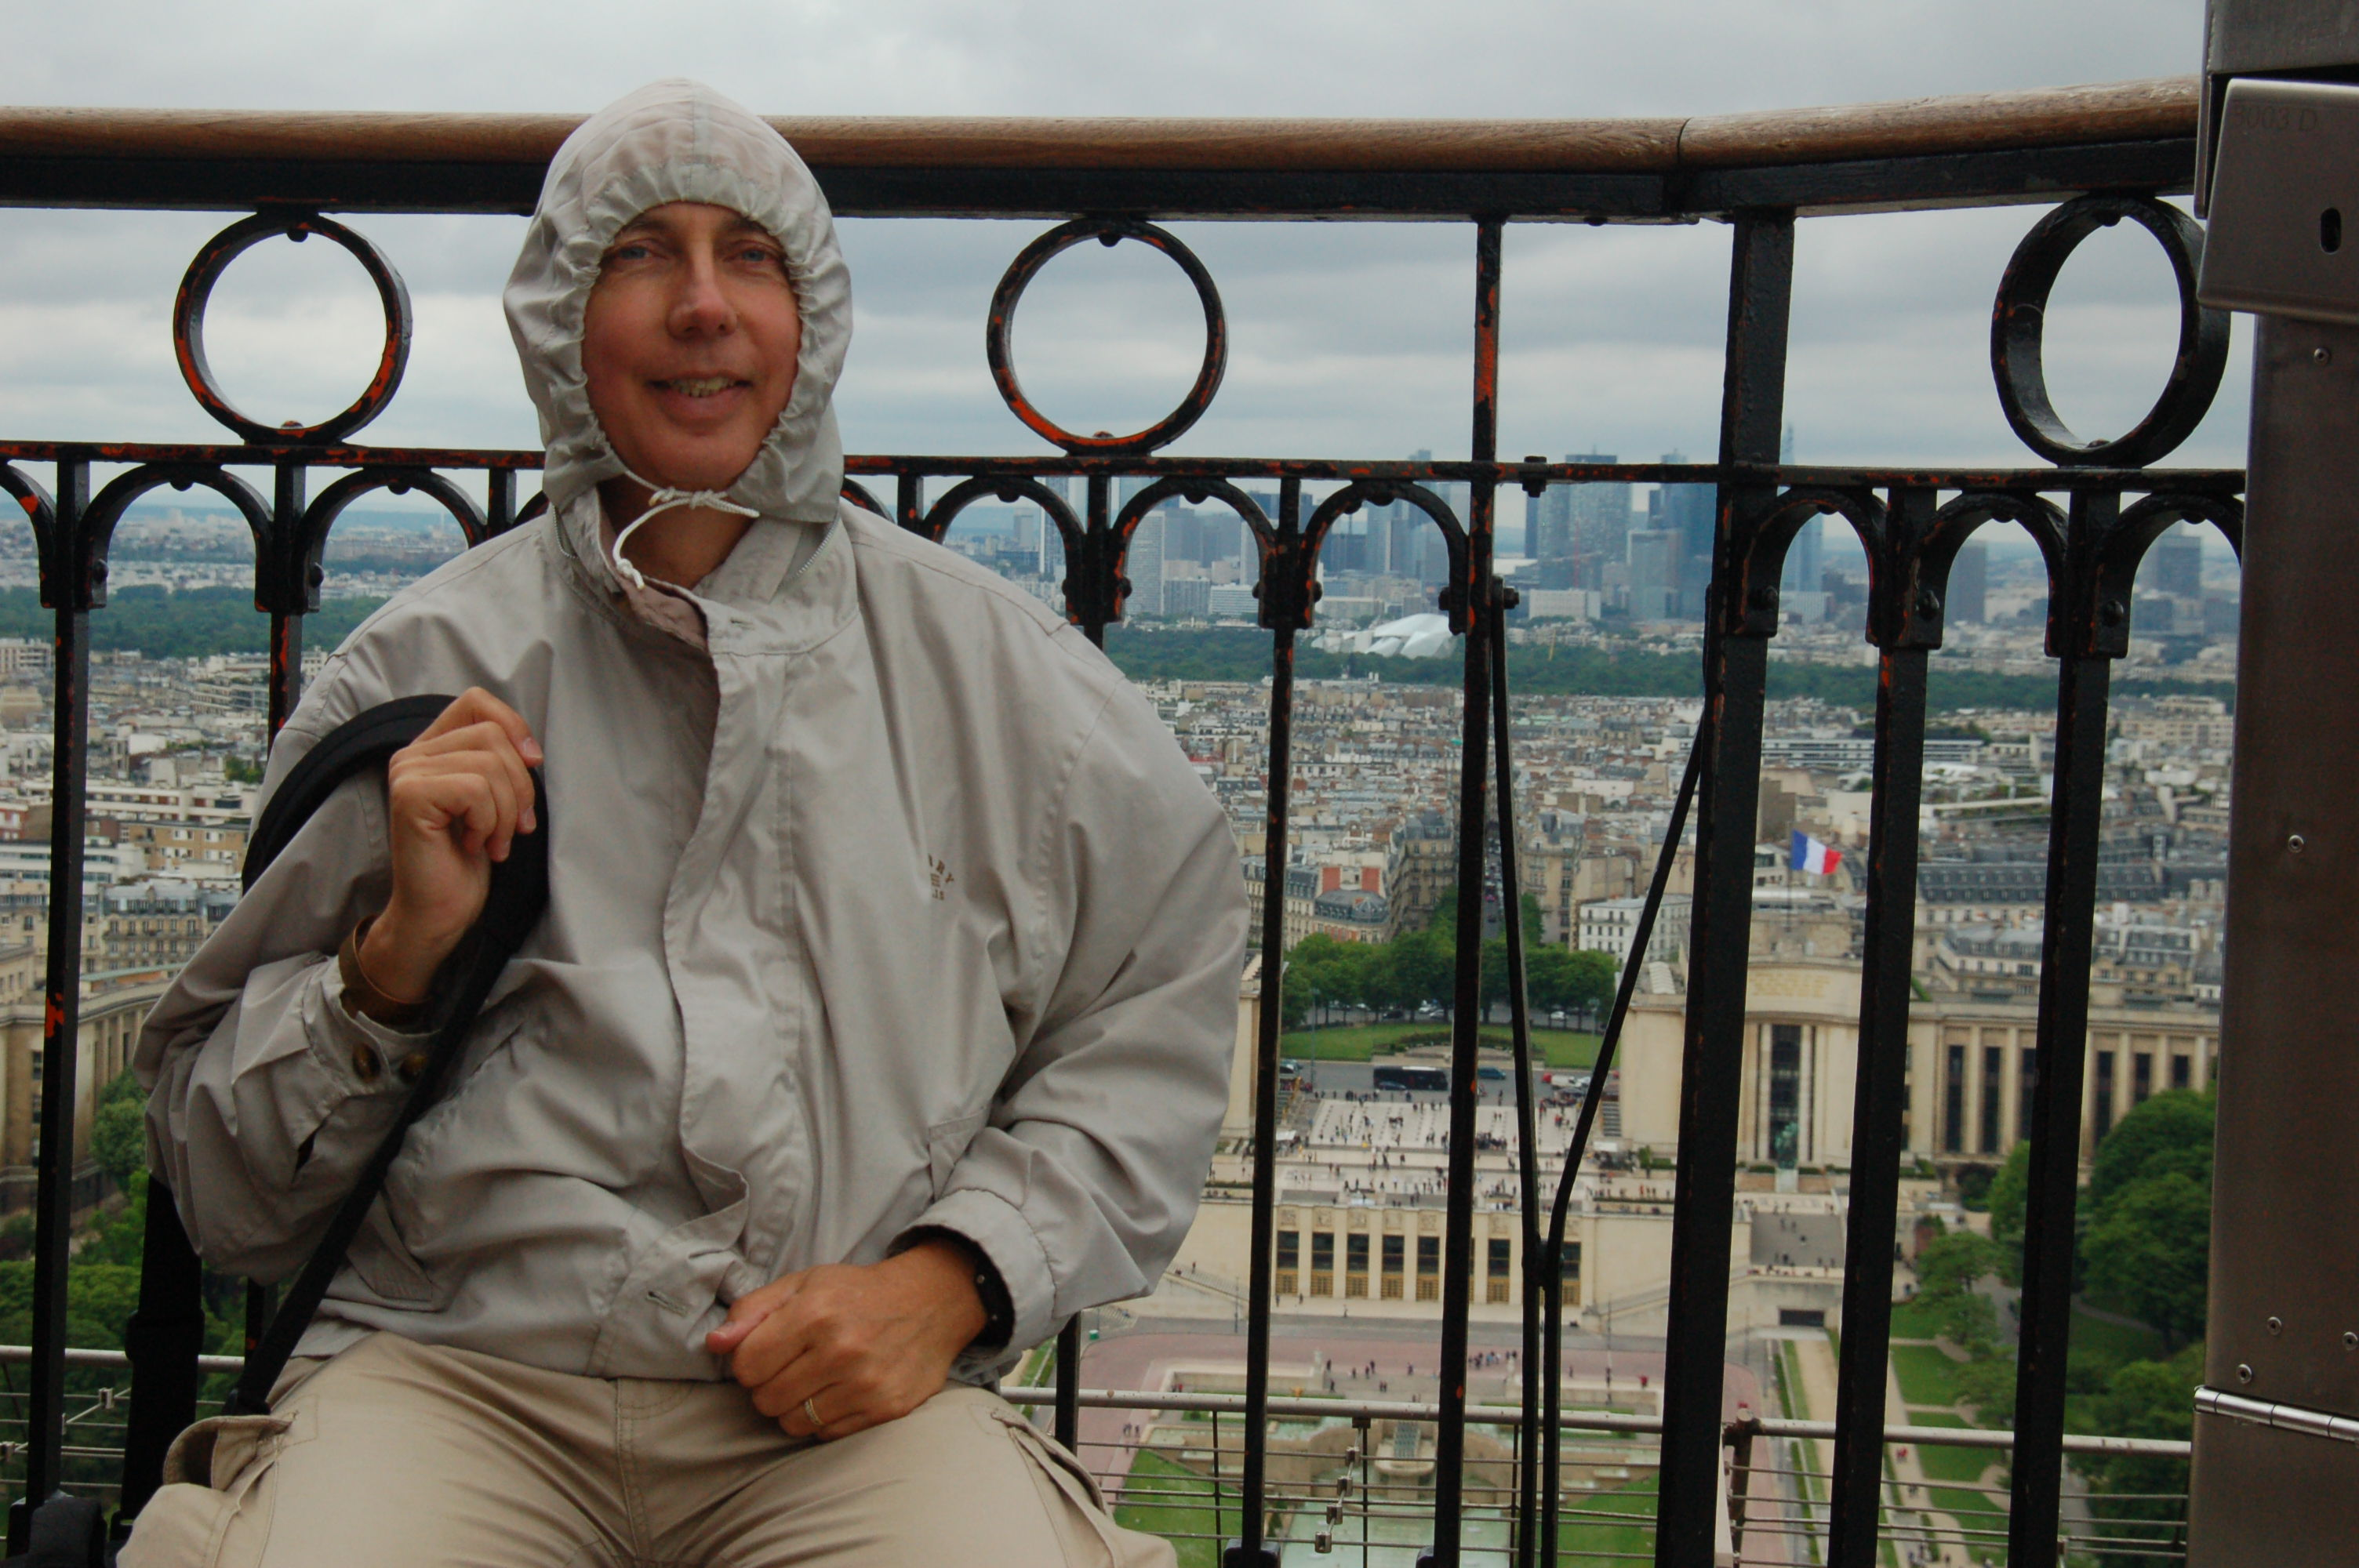 Ron On Top Of The Eiffel Tower